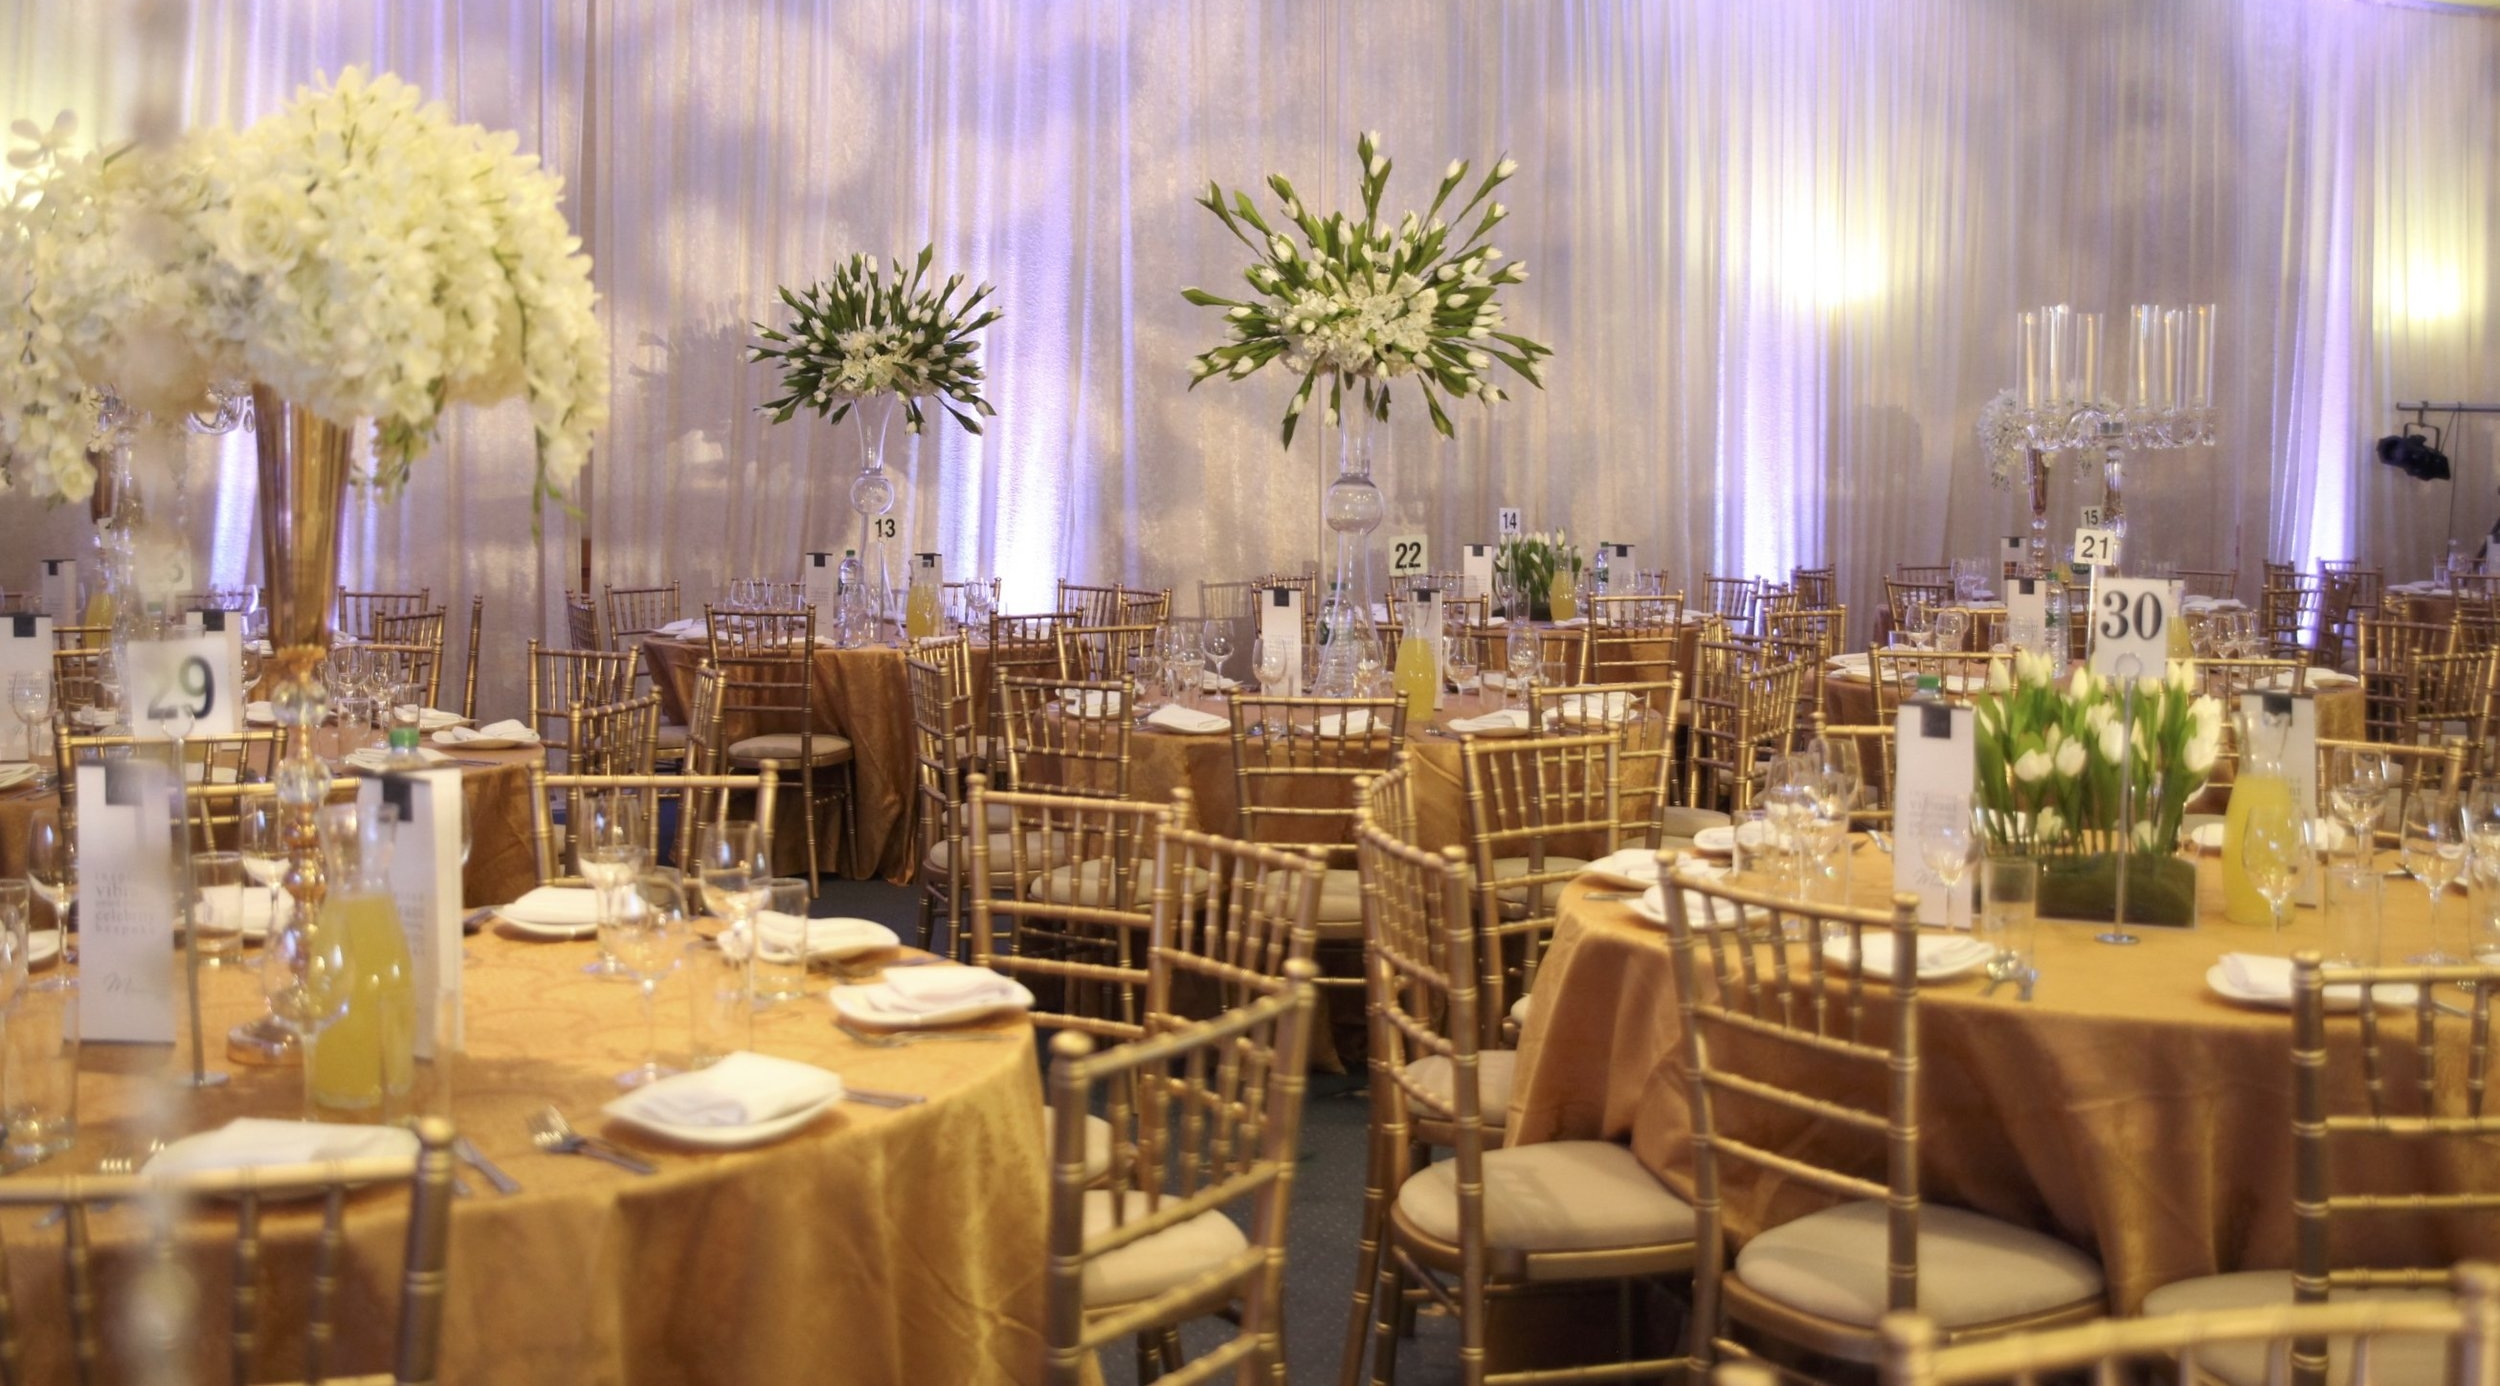 The Colour Palette - The secret to our Green Theme is using it the greens in a controlled way along with the accent golds and whites to create a classy atmosphere.We used Bespoke Venue Draping in a Ivory Crush Velour to allow for profile spot projection of patterns.